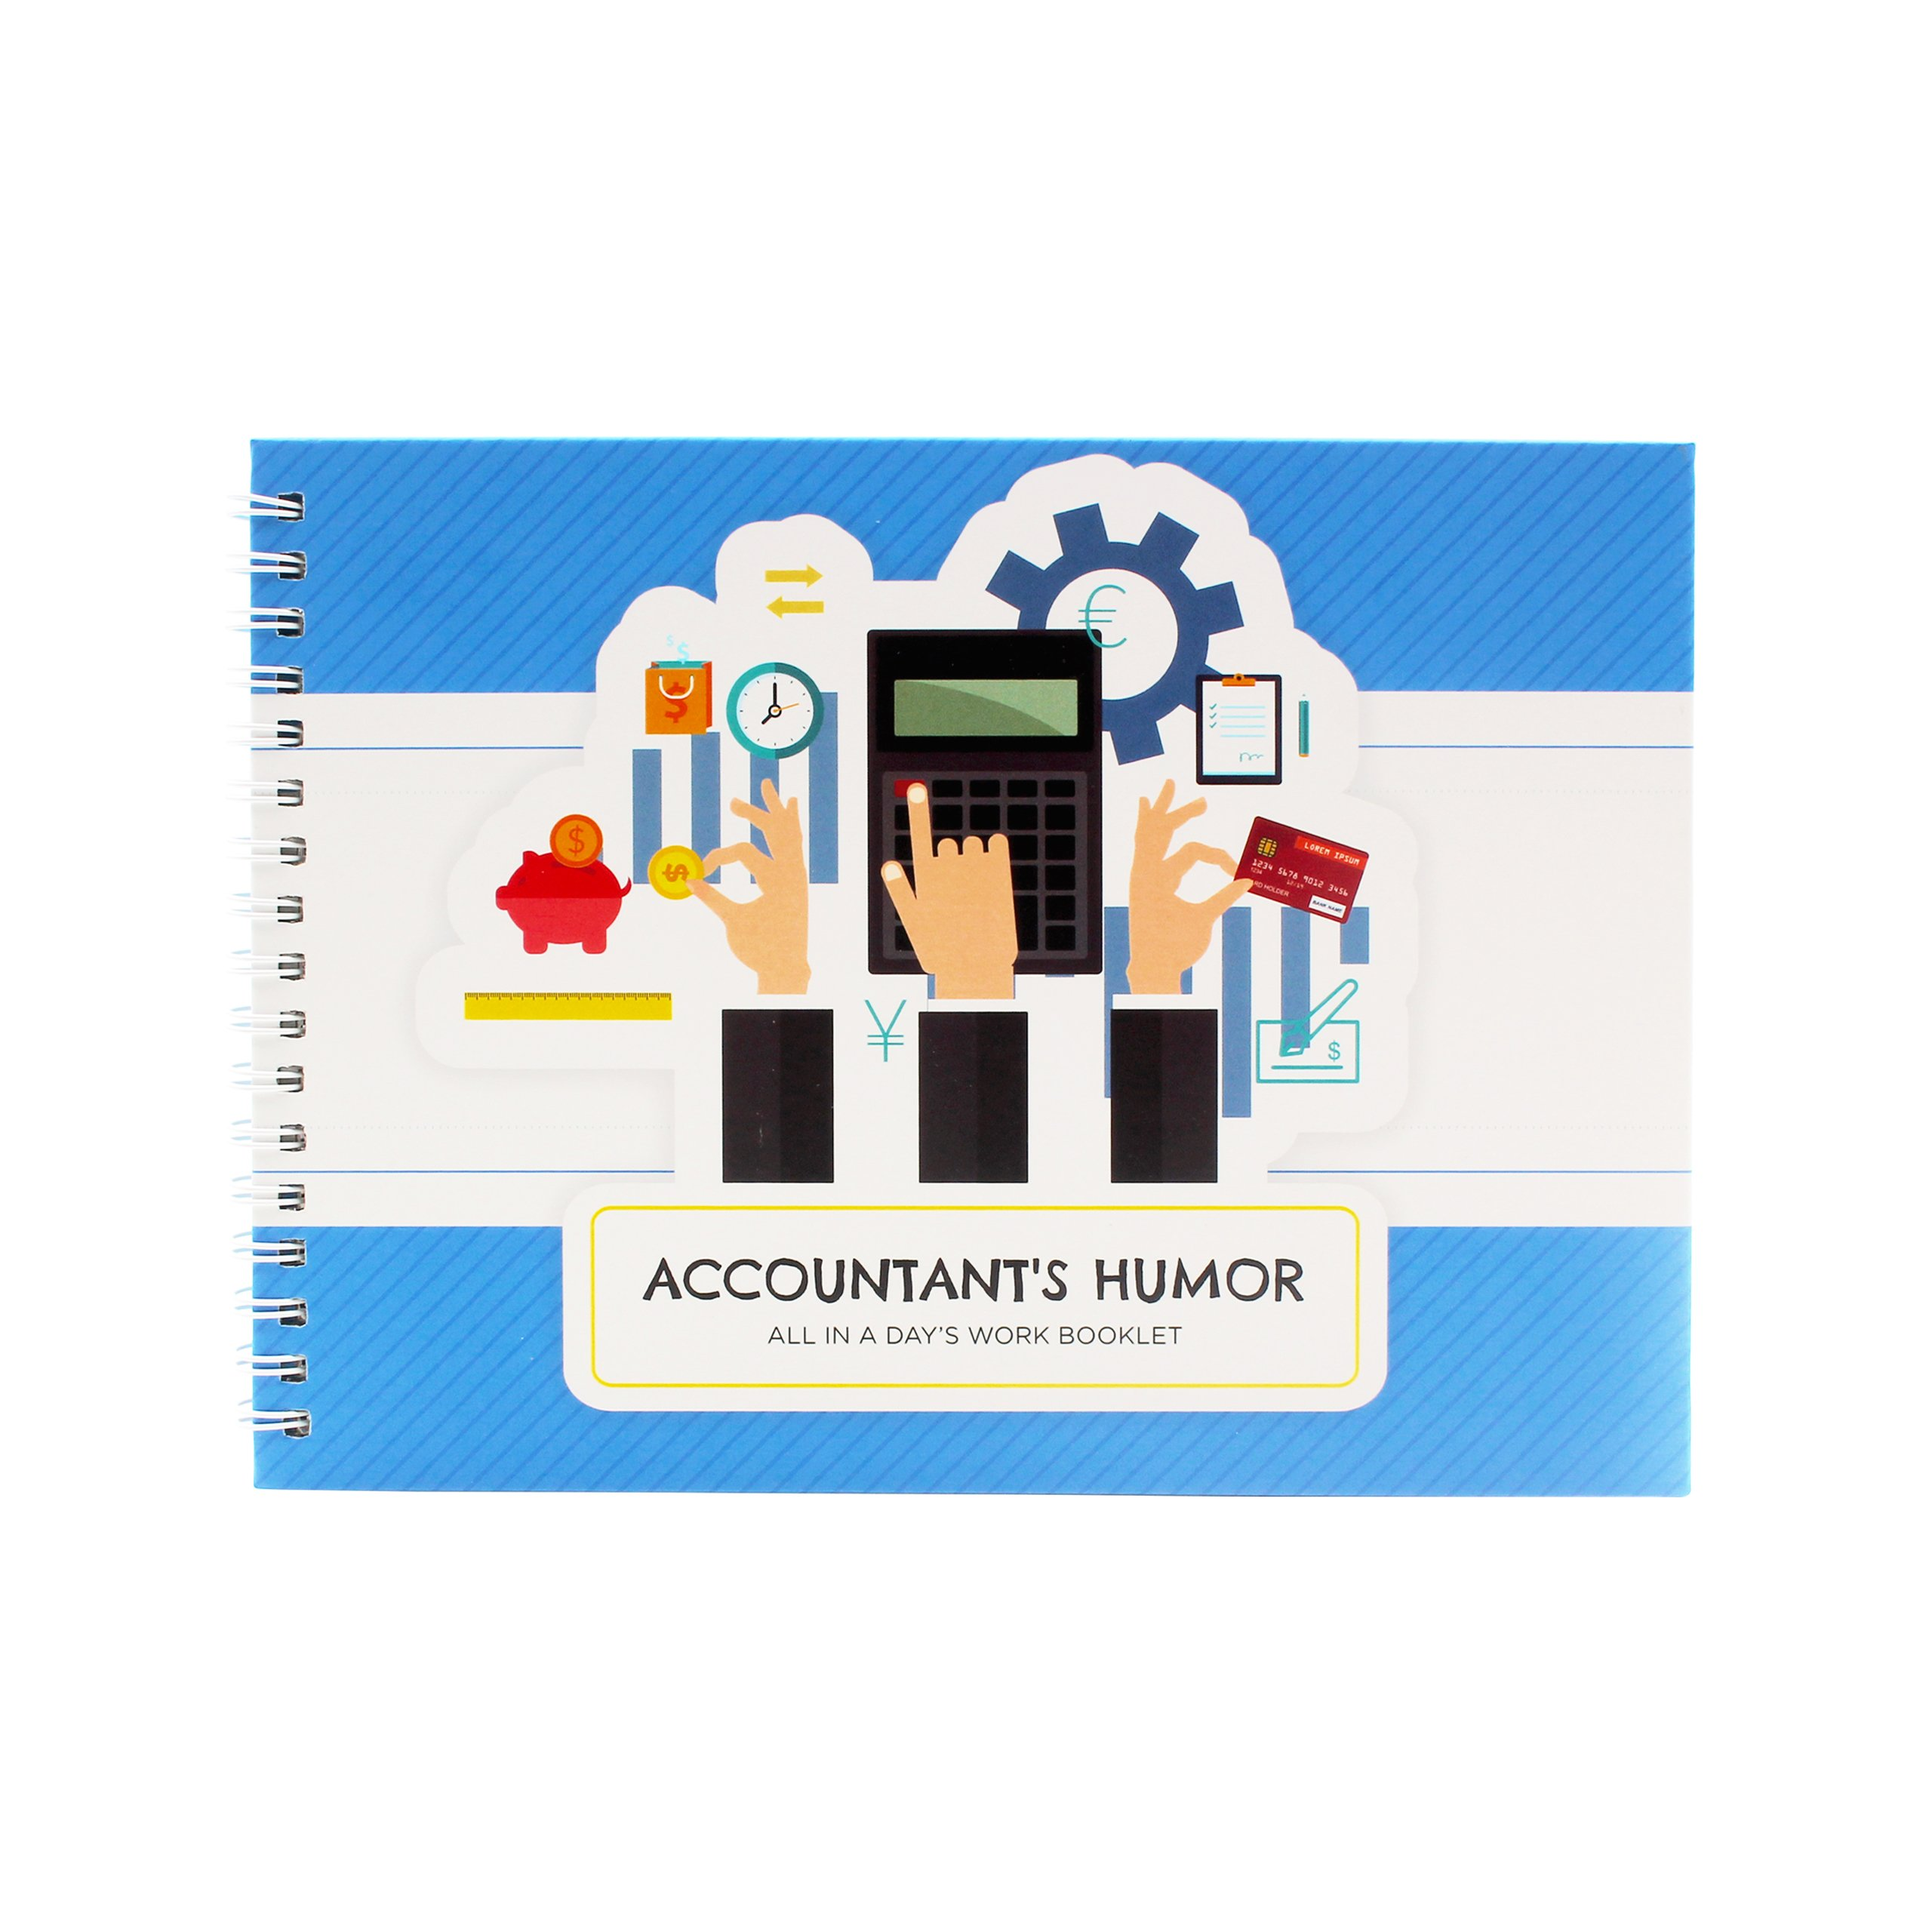 Original Accountant Gifts - Personalizable Humor